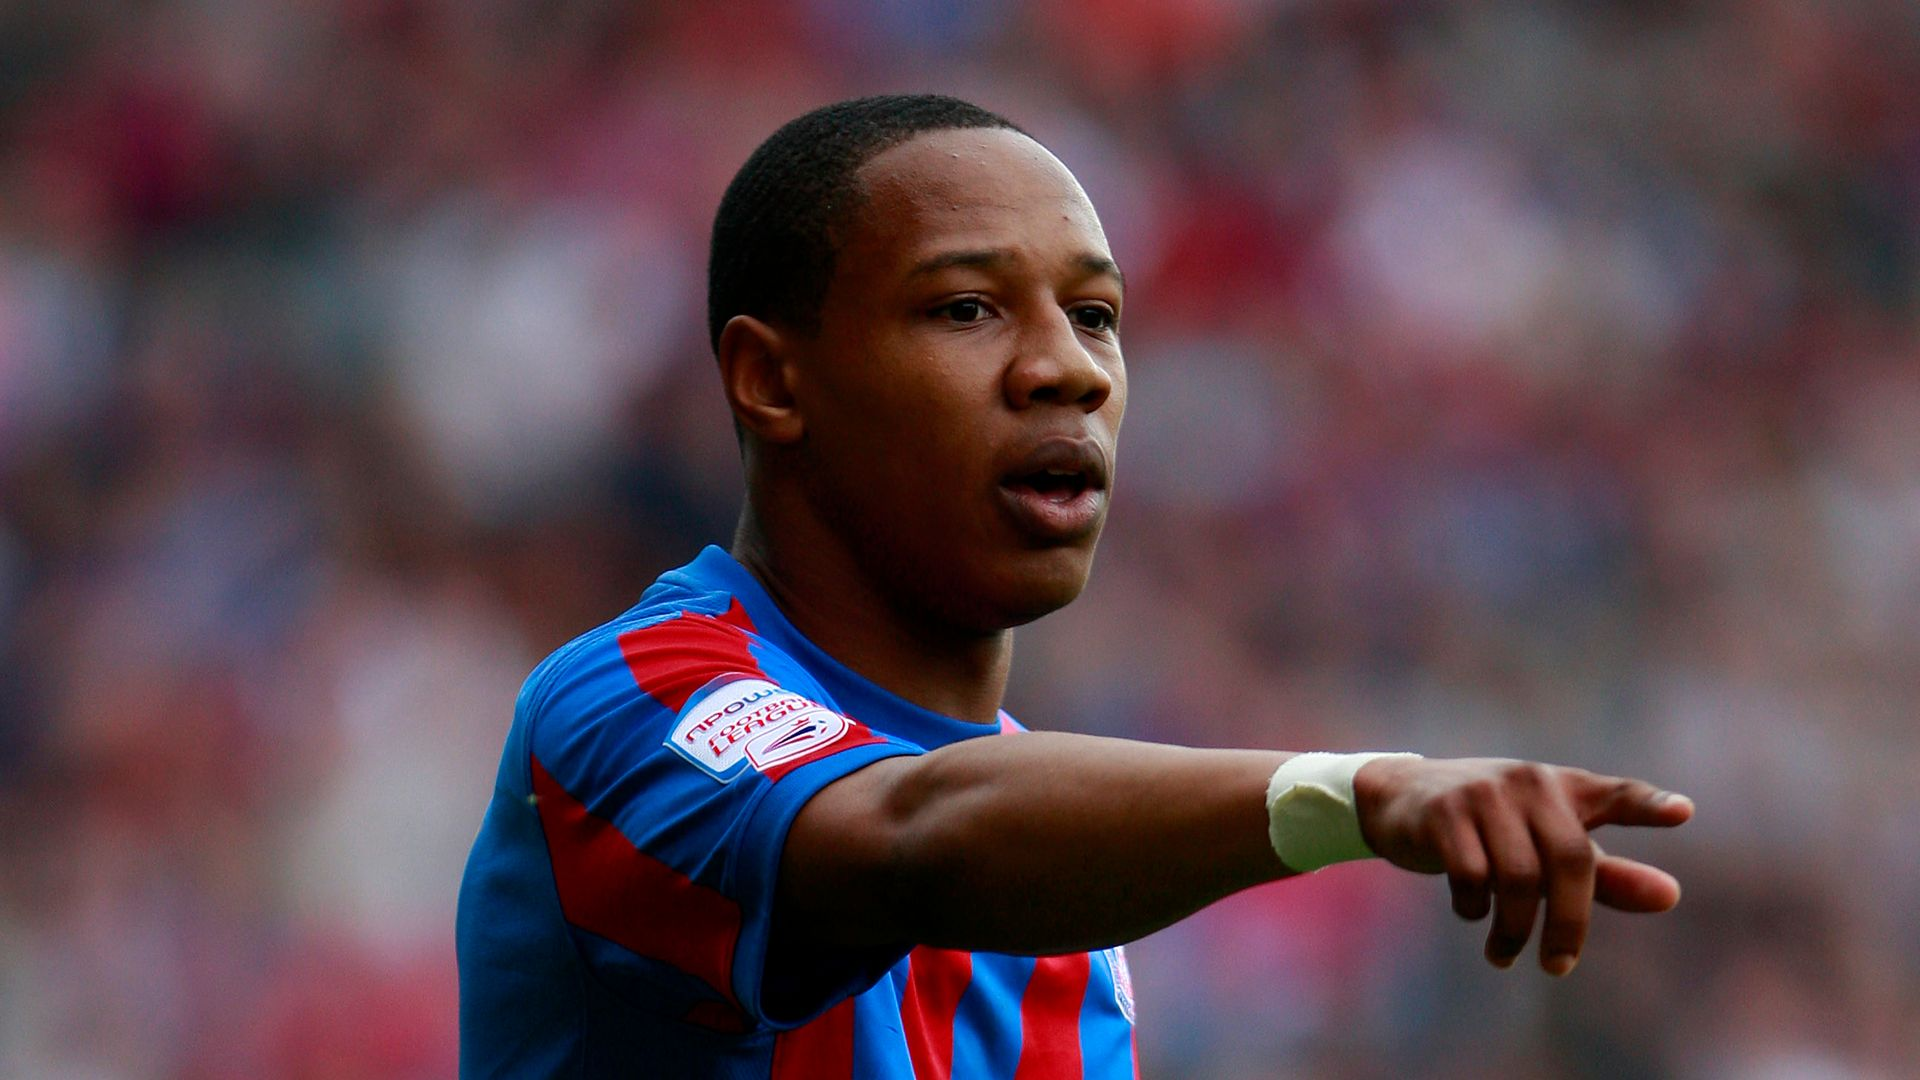 Clyne returns to Palace on short-term deal